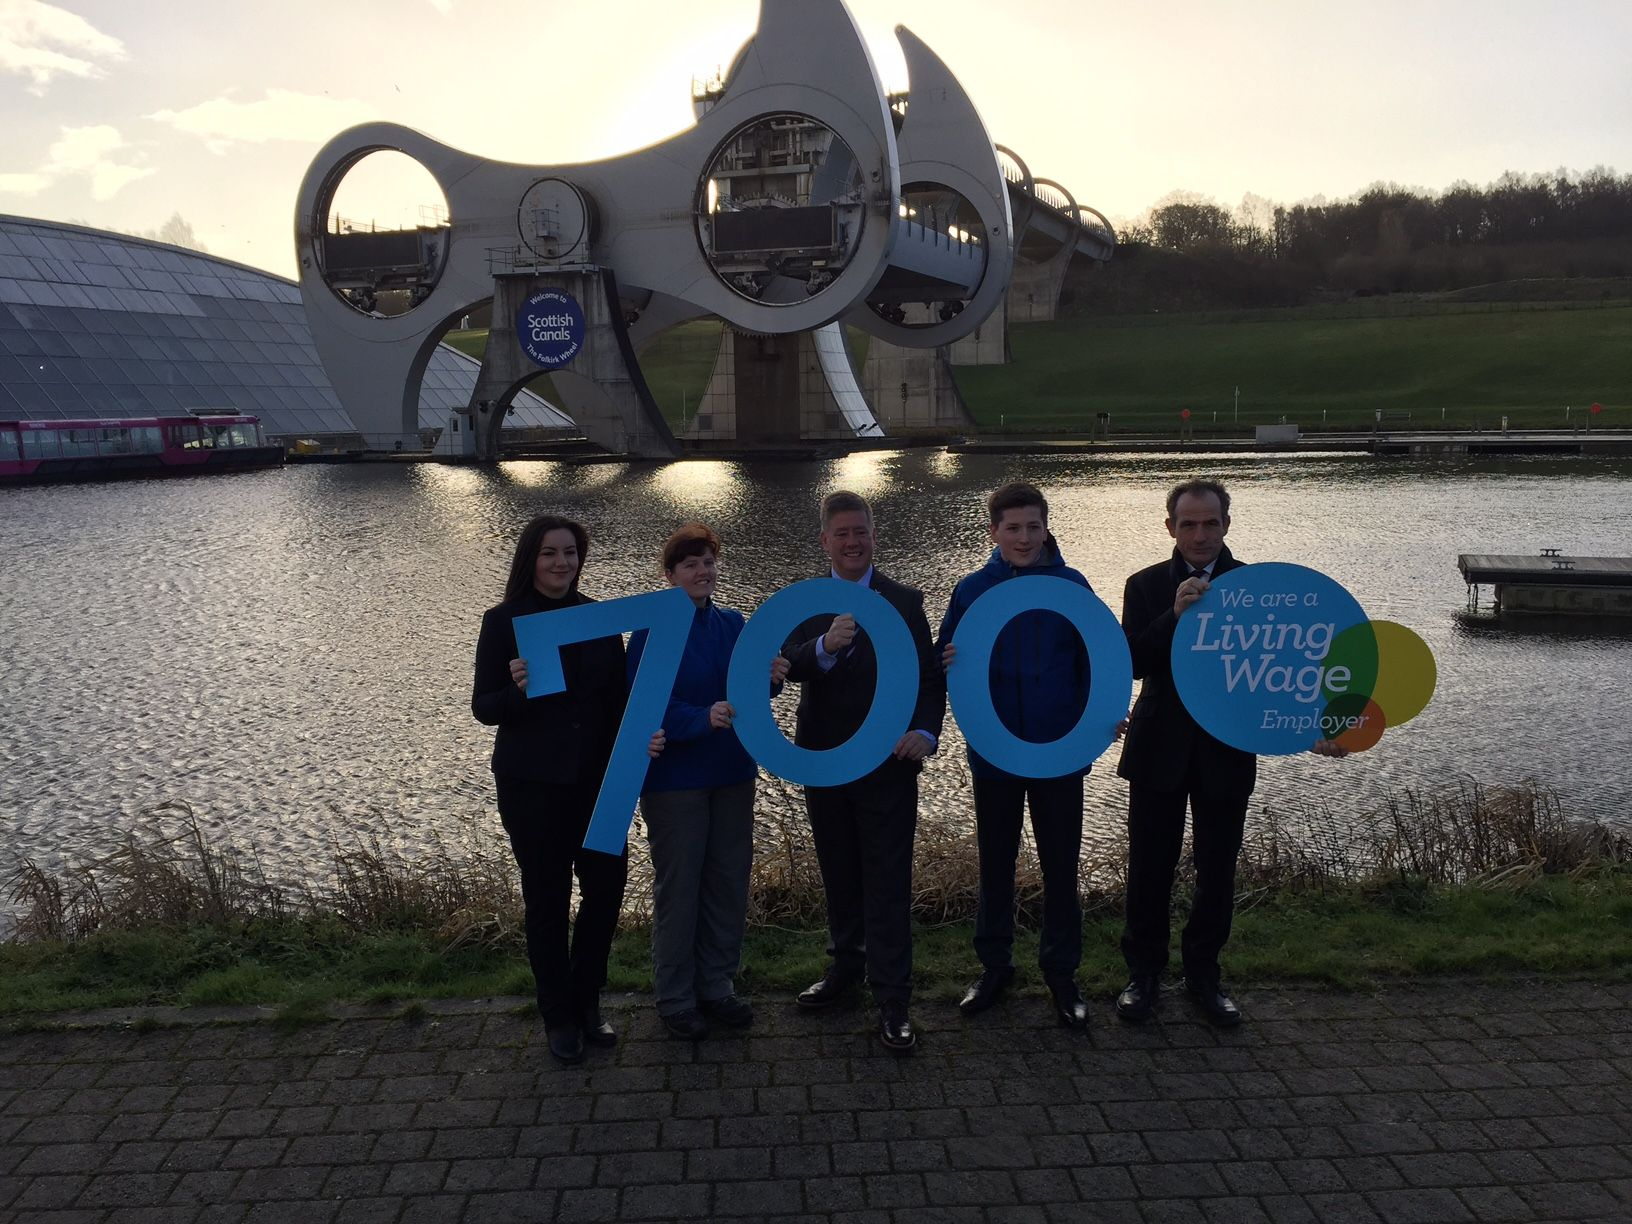 .@scottishcanals becomes 700th Scottish-based Living Wage accredited employer https://t.co/KE16VhF3Rj @KeithBrownSNP https://t.co/CEfK3zbhry